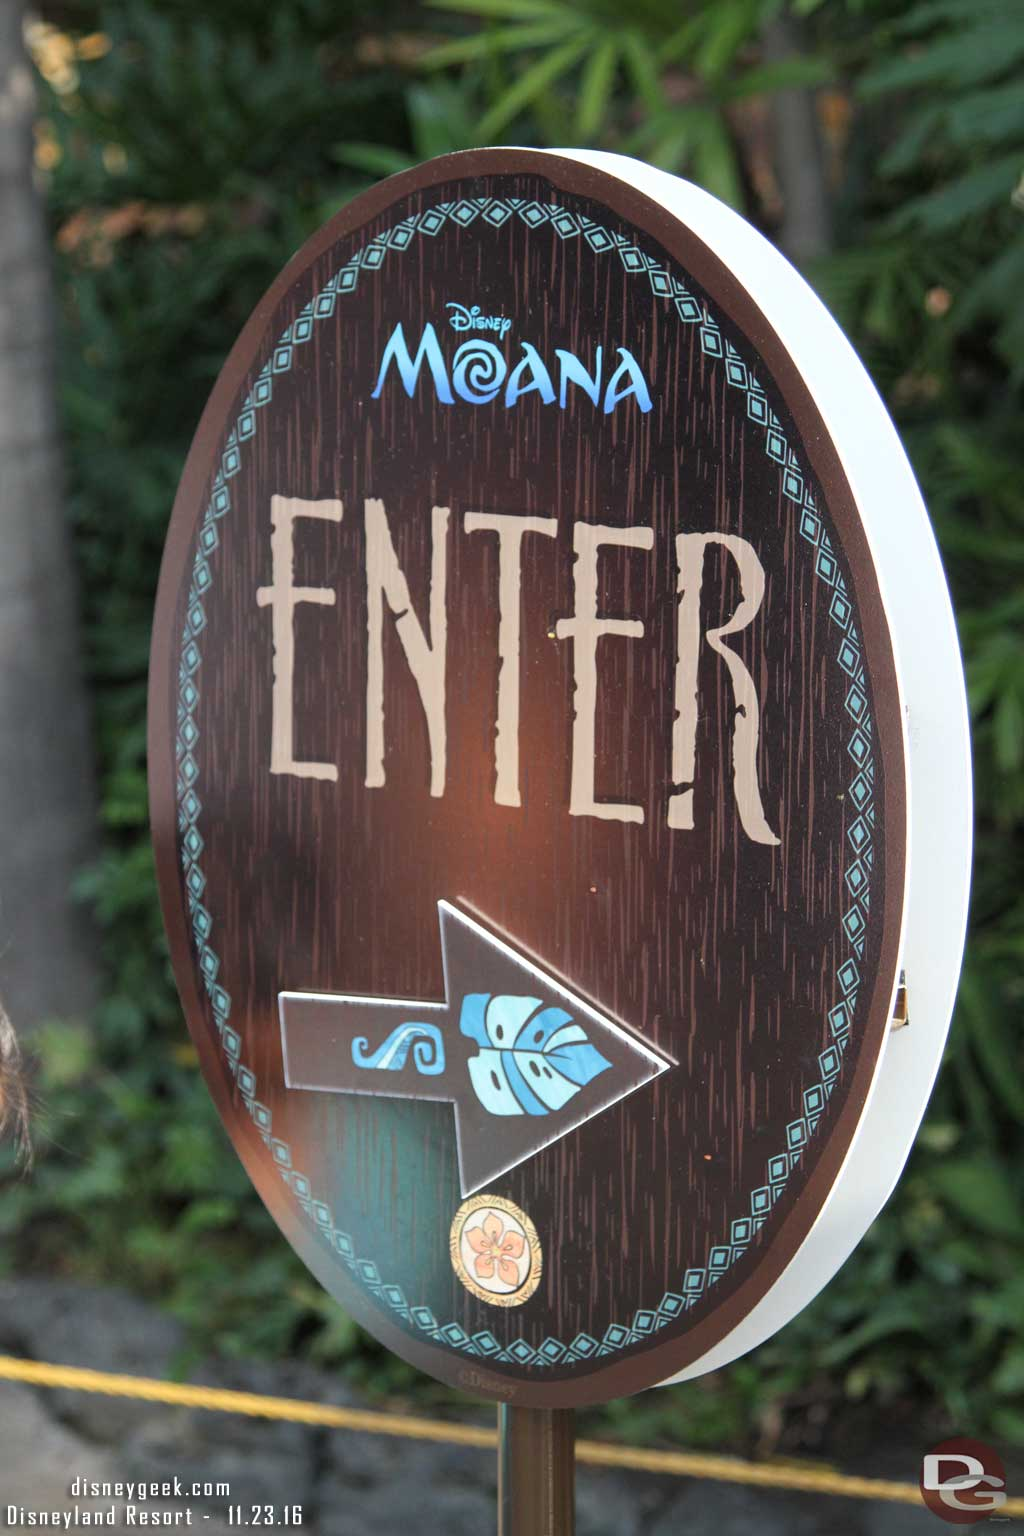 Moana Meet and Greet in Adventureland